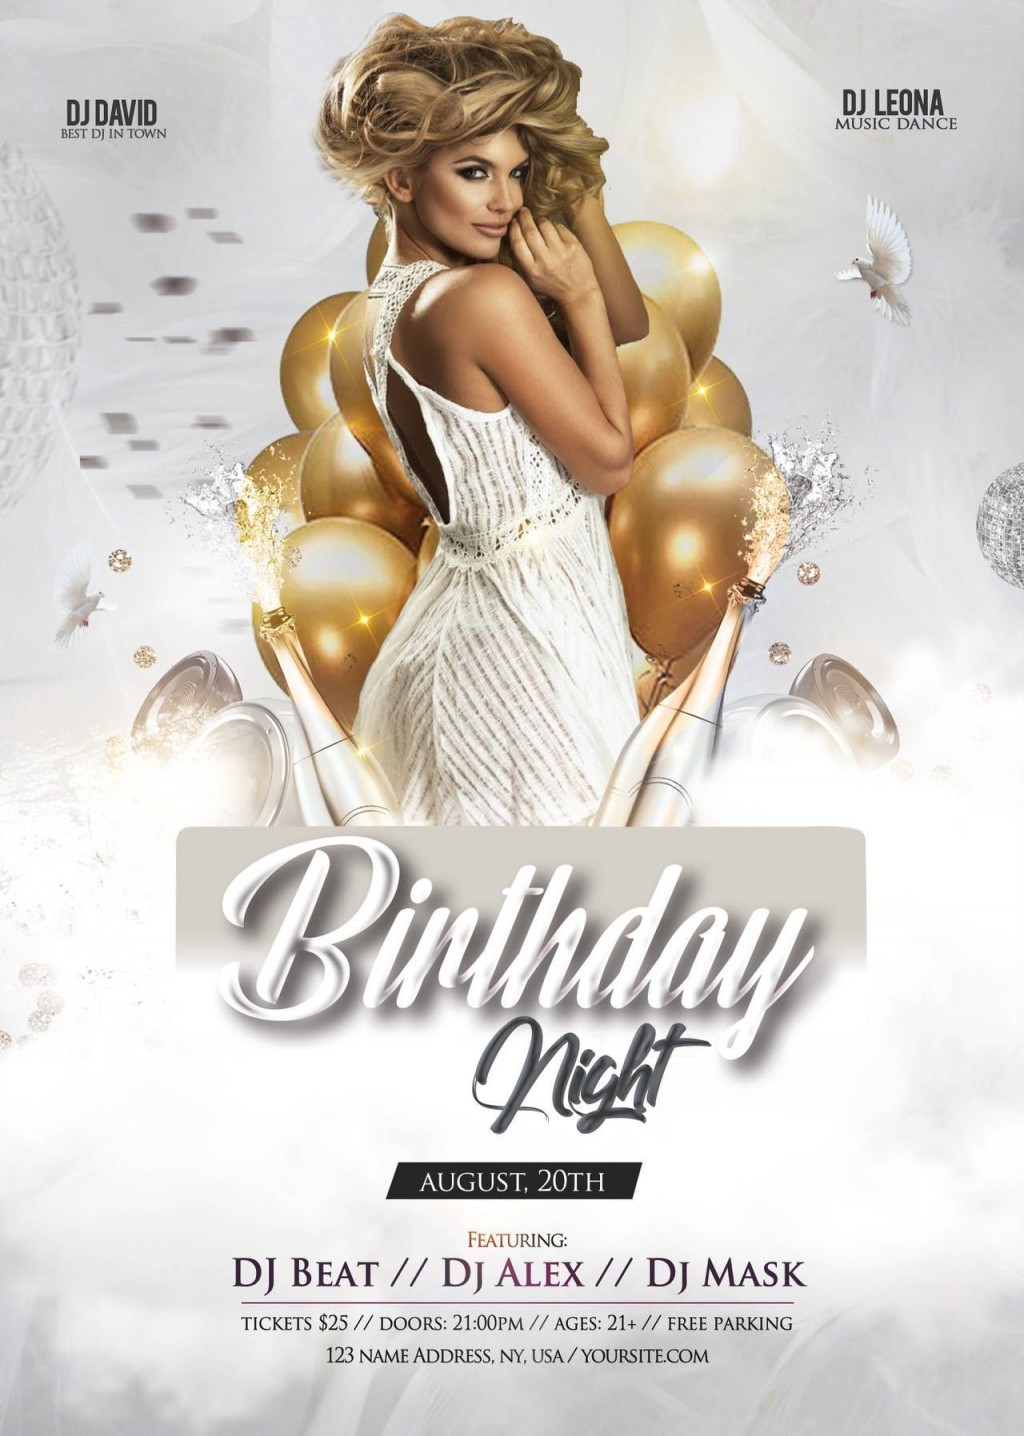 005 Unusual Birthday Flyer Template Psd Free Download High Definition Large